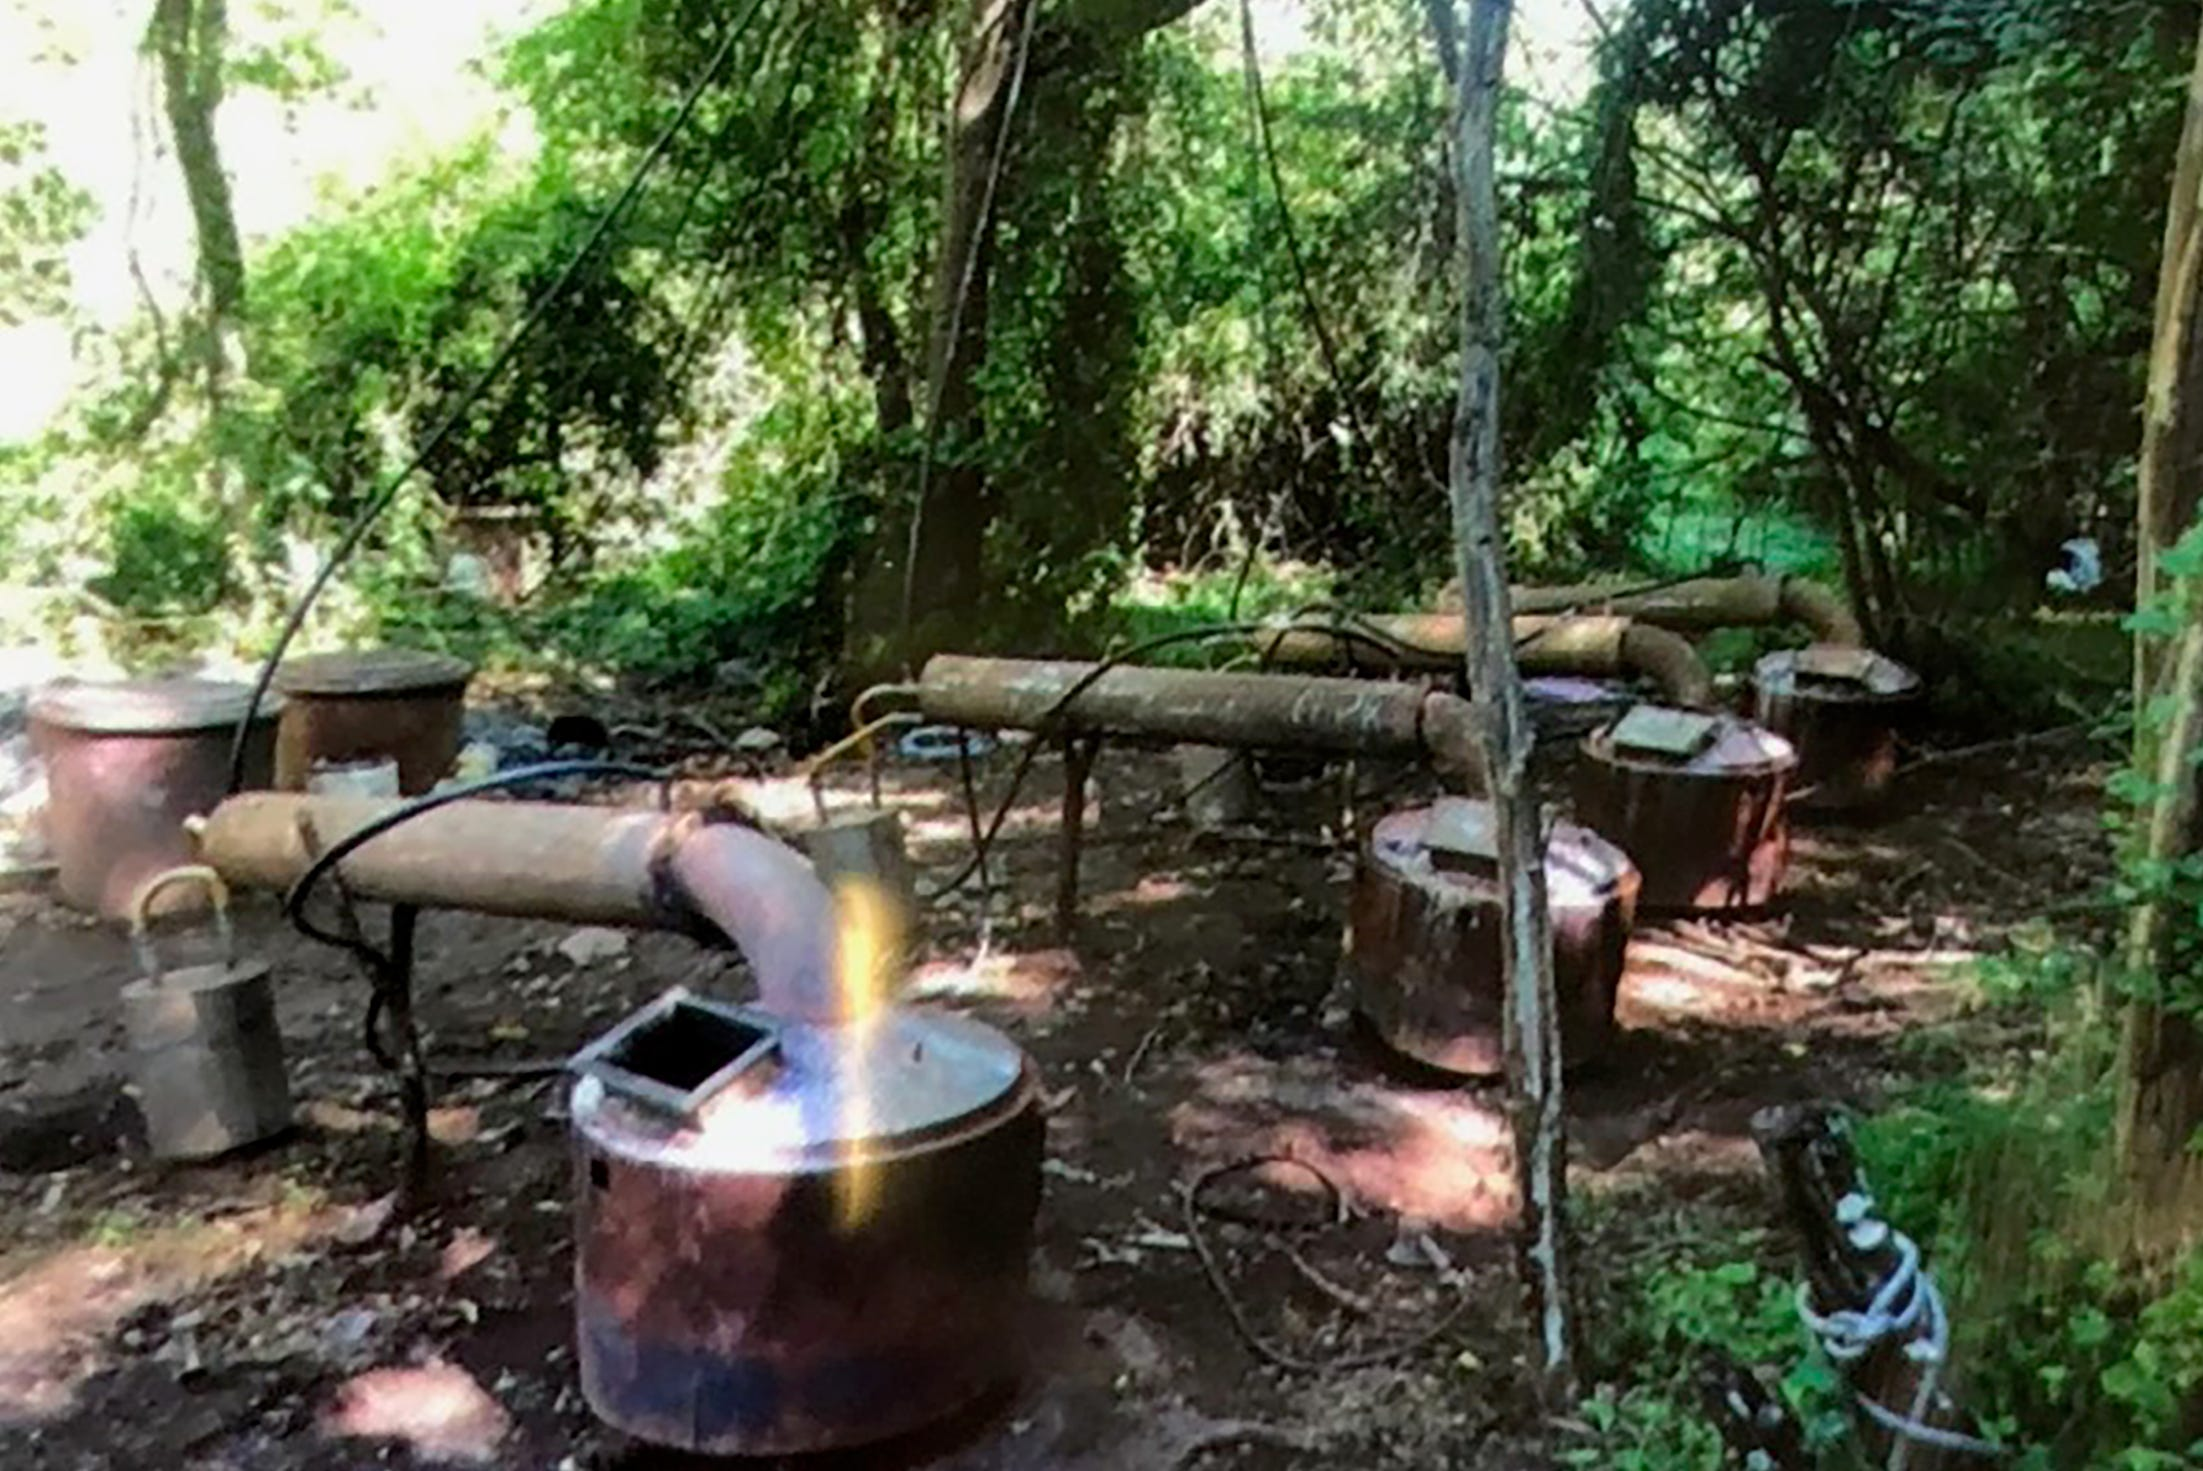 This billion-dollar cartel doesn't spend a lot of money on its meth super labs, like this one in the jungles of Jalisco. If police bust it, they just abandon it and move on to another one.